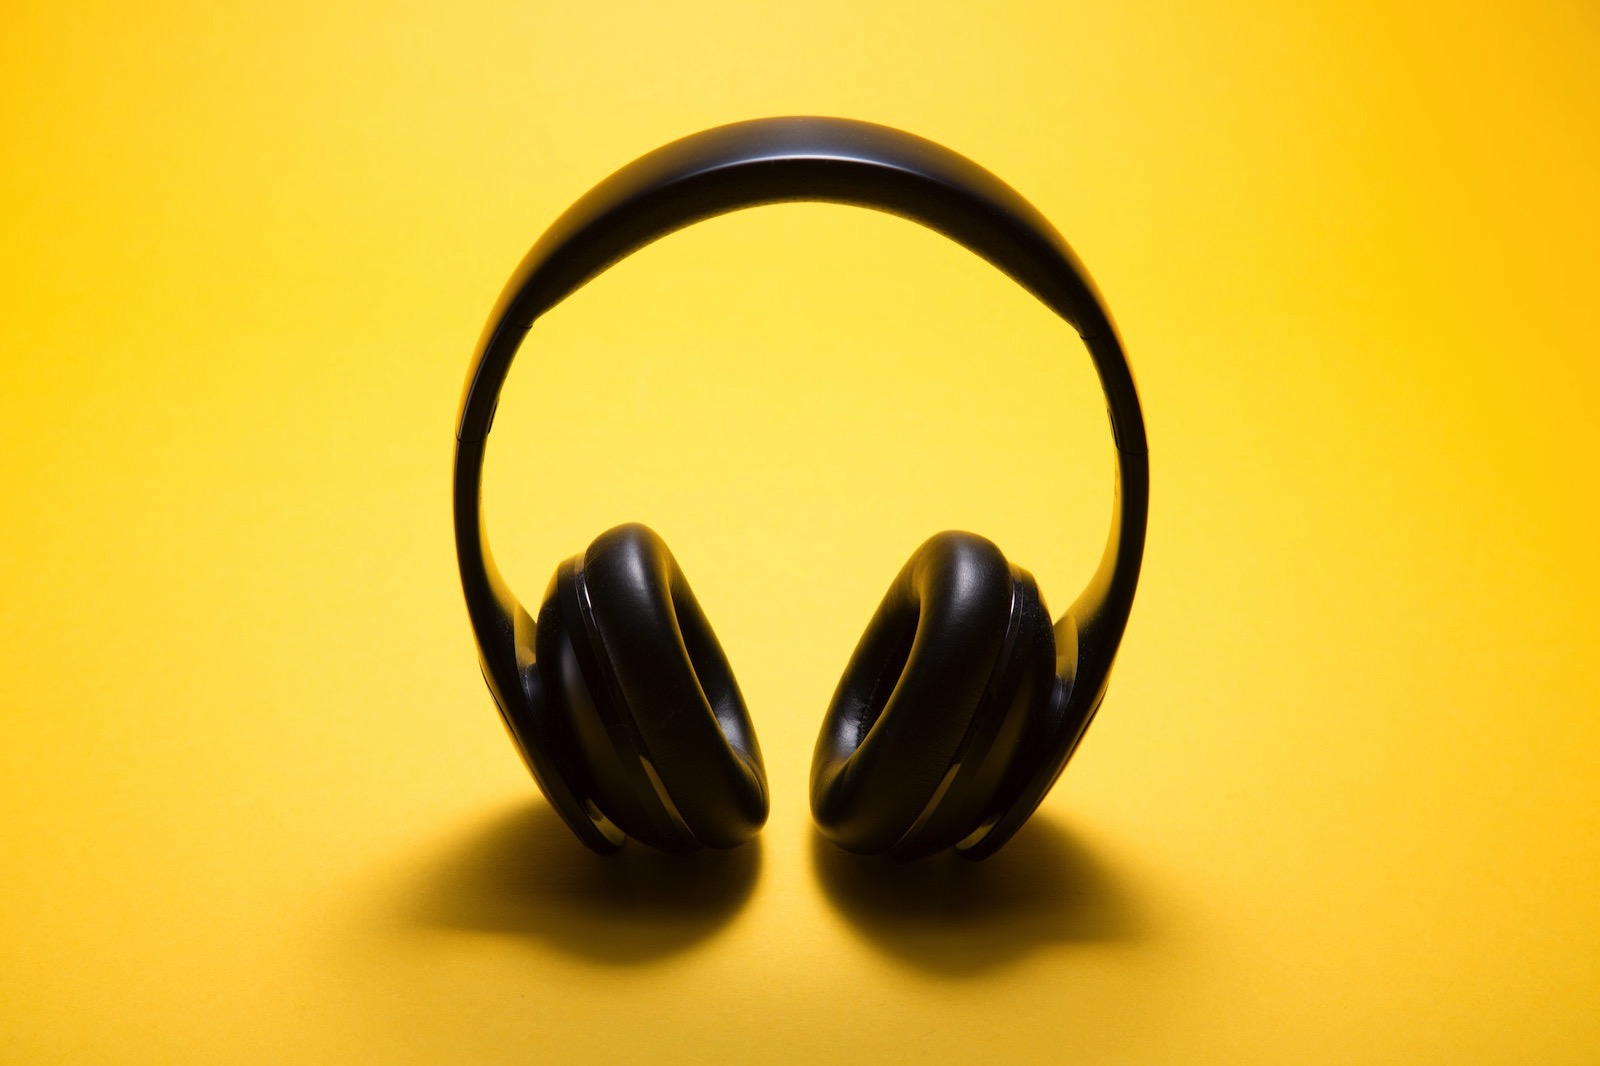 Malte wingen 381987 unsplash headphone